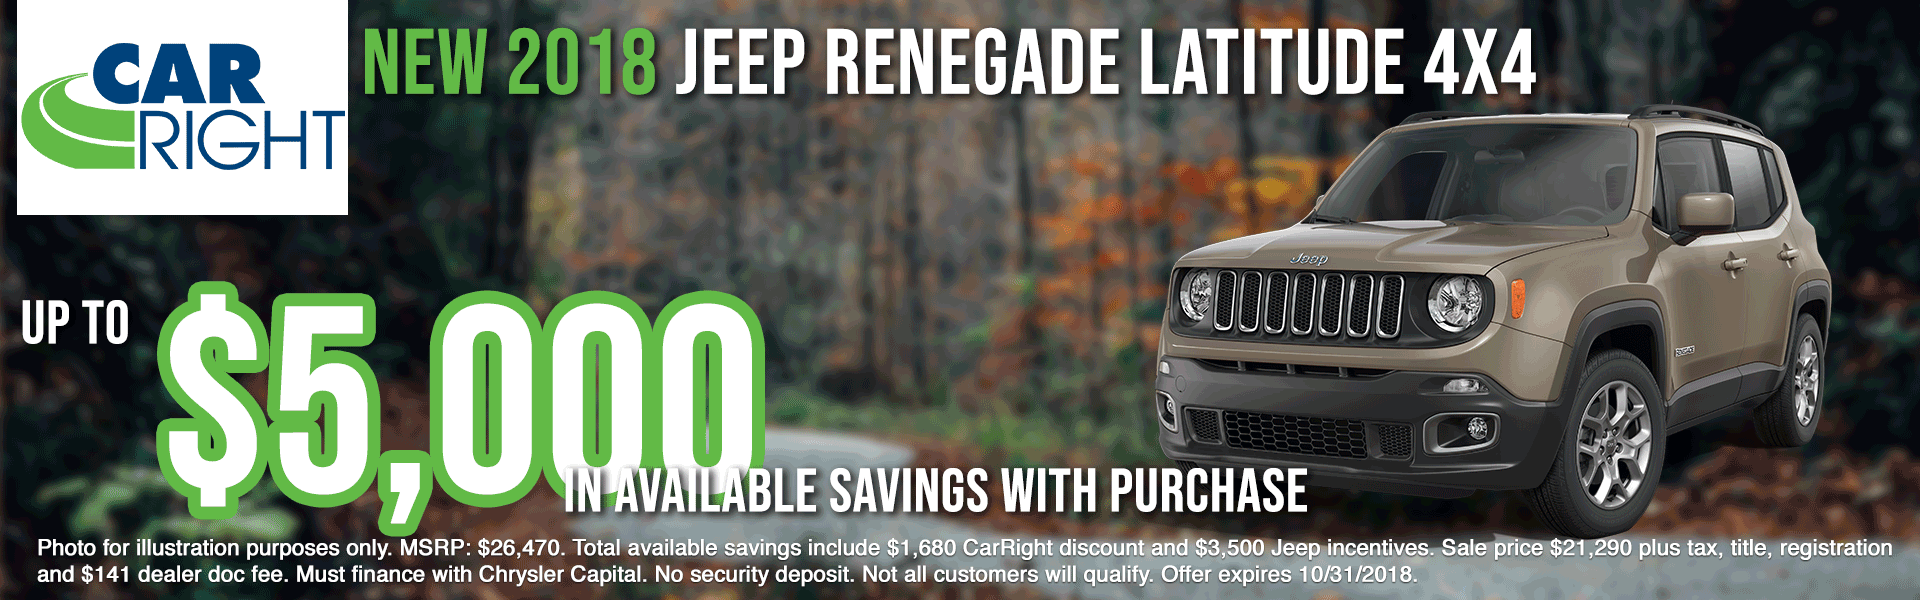 carright new vehicle specials carright specials chrysler specials dodge specials jeep specials ram specials lease specials moon township buy your car right the right way to buy a car V2833---2018-JEEP-RENEGADE-LATITUDE-4X4-OCT-BIG